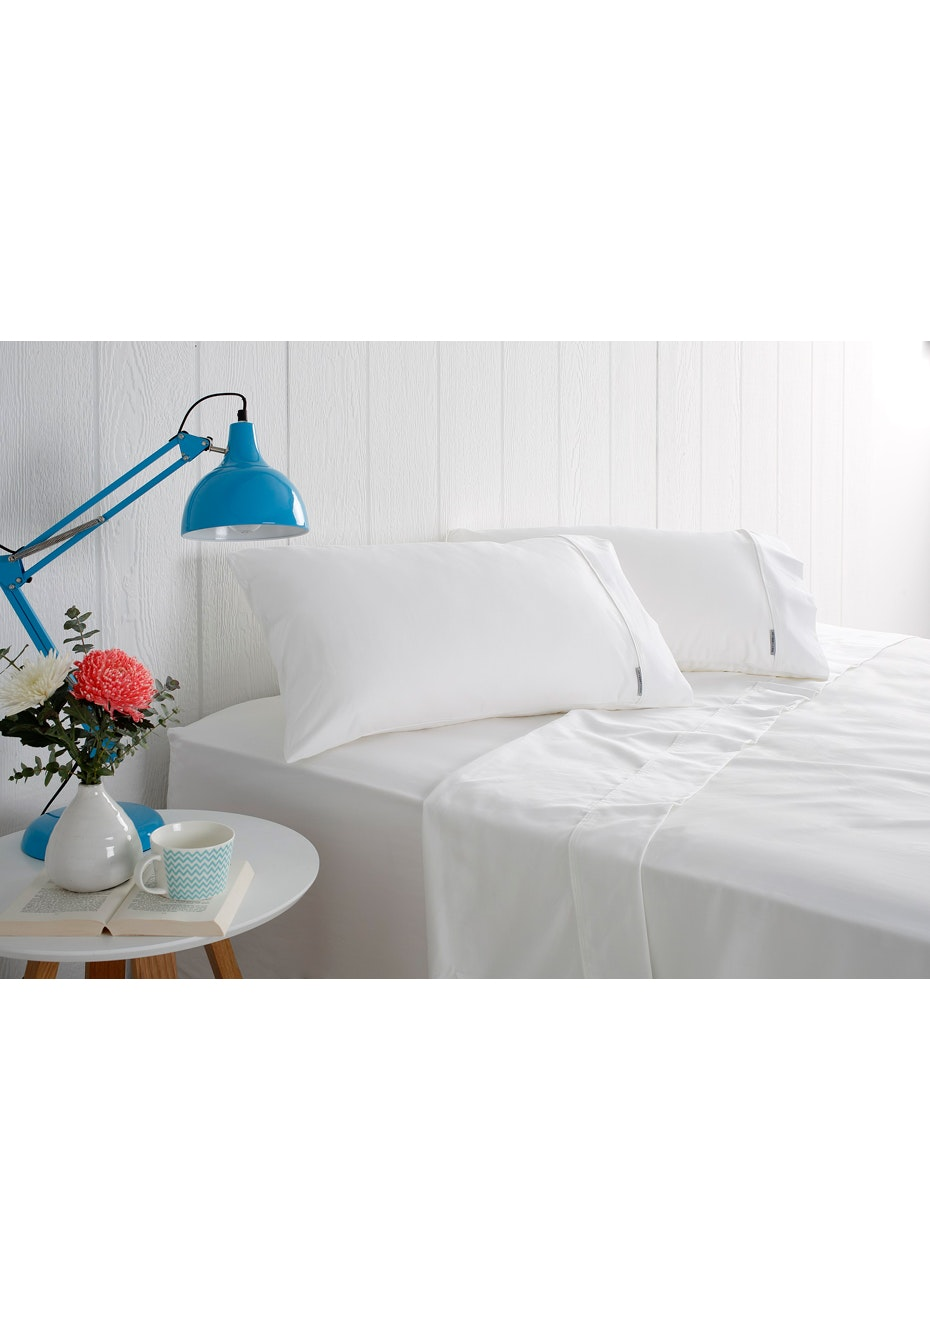 Odyssey Living 1000 Thread Count – Cotton Rich Sheet Sets - White - Single Bed